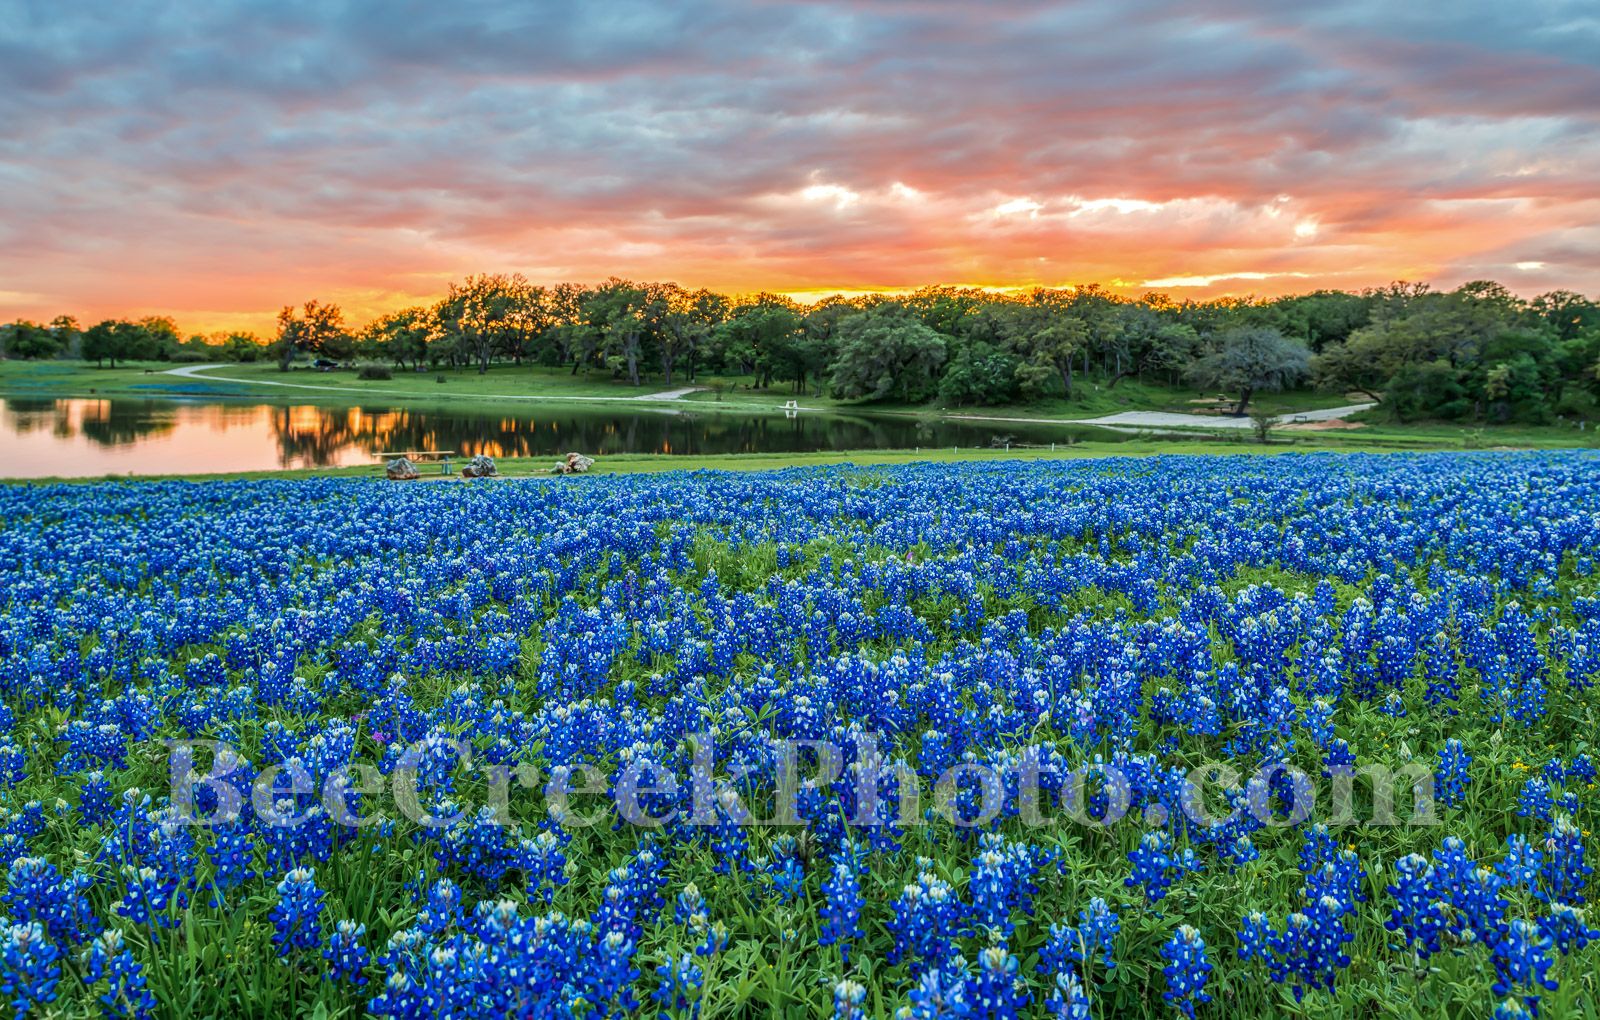 Bluebonnets, bluebonnet, sunset, sunsets, colors, oranges, pinks, reds, sky, colorful, blue bonnets, wildflowers, wildflower, Colorado River, landscapes, landscape, water, Texas flowers, Texas, flora,, photo